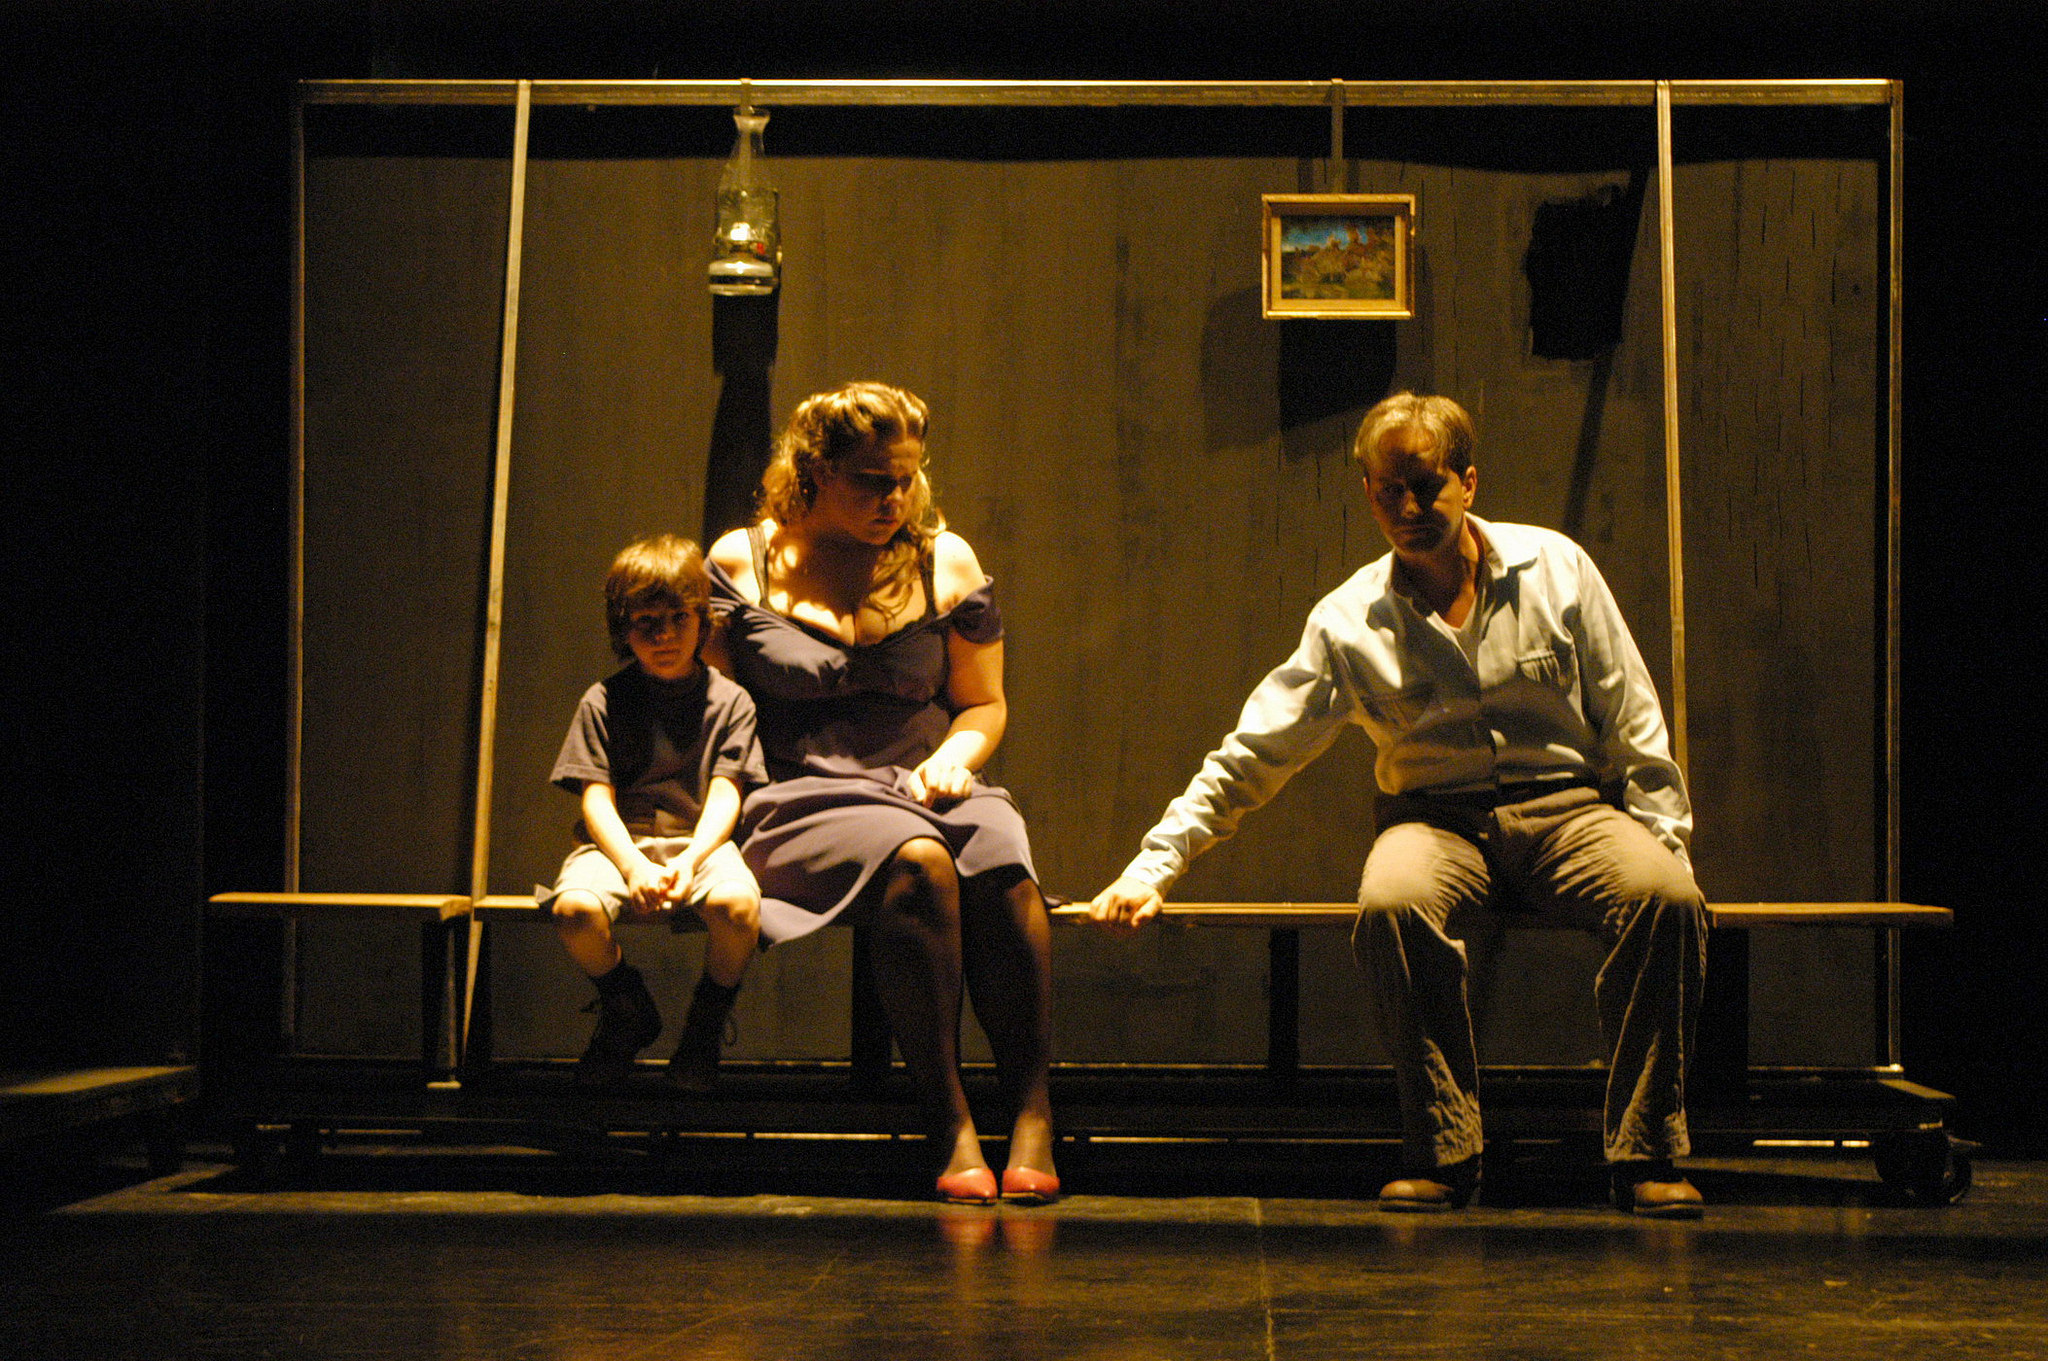 From a 2005 performance of Wozzeck by Teatro Avenida, Buenos Aires.